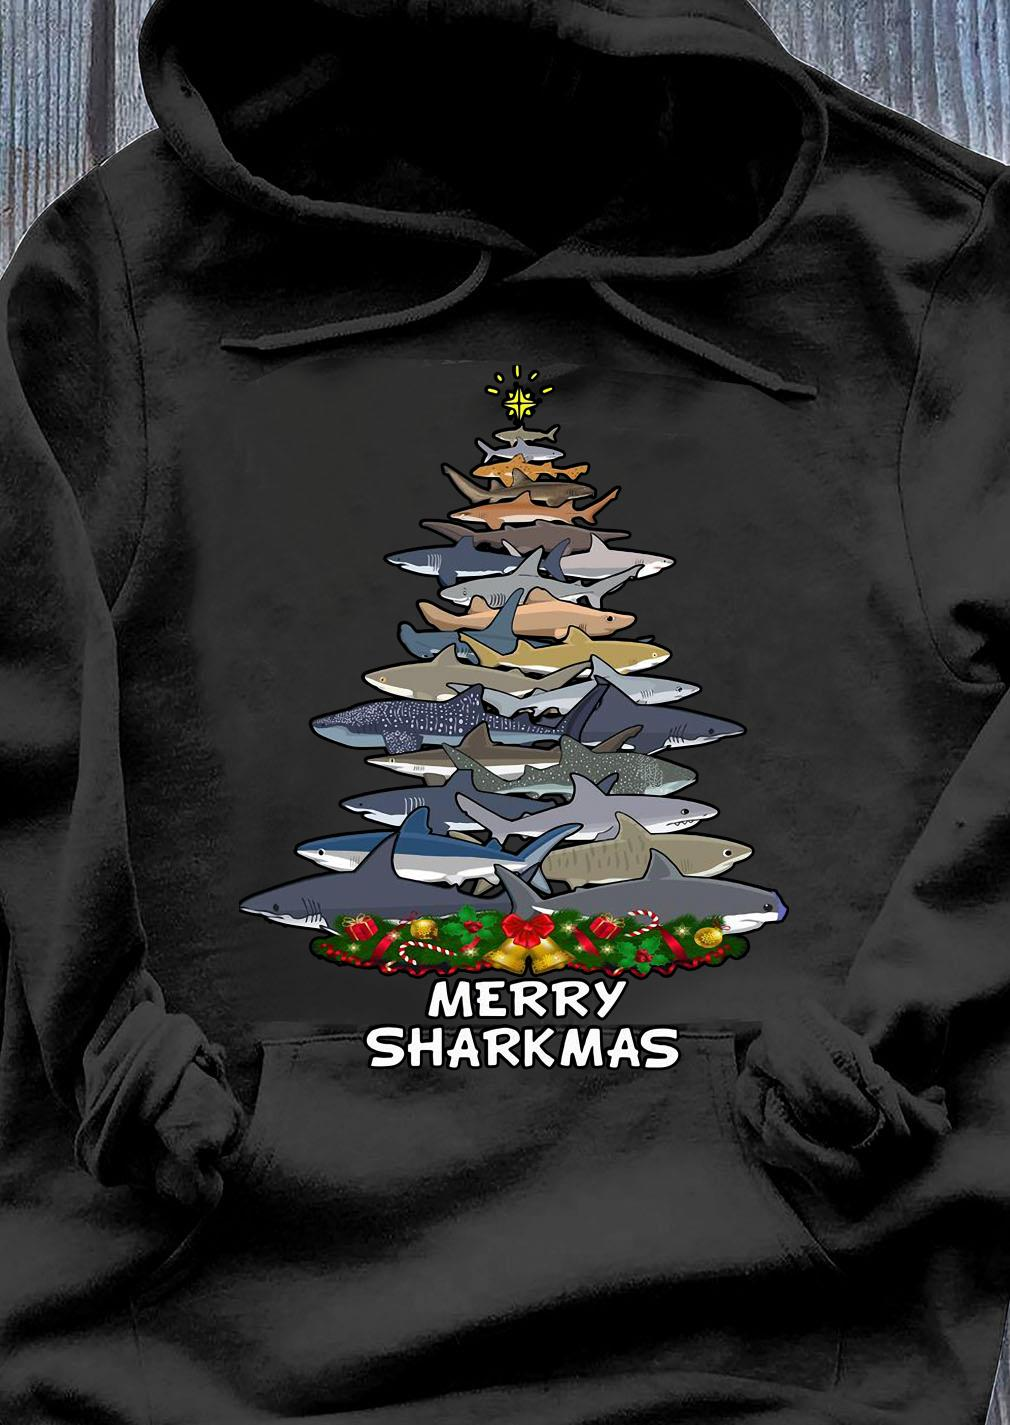 Sharks Merry Sharkmas Tree Christmas Shirt Hoodie